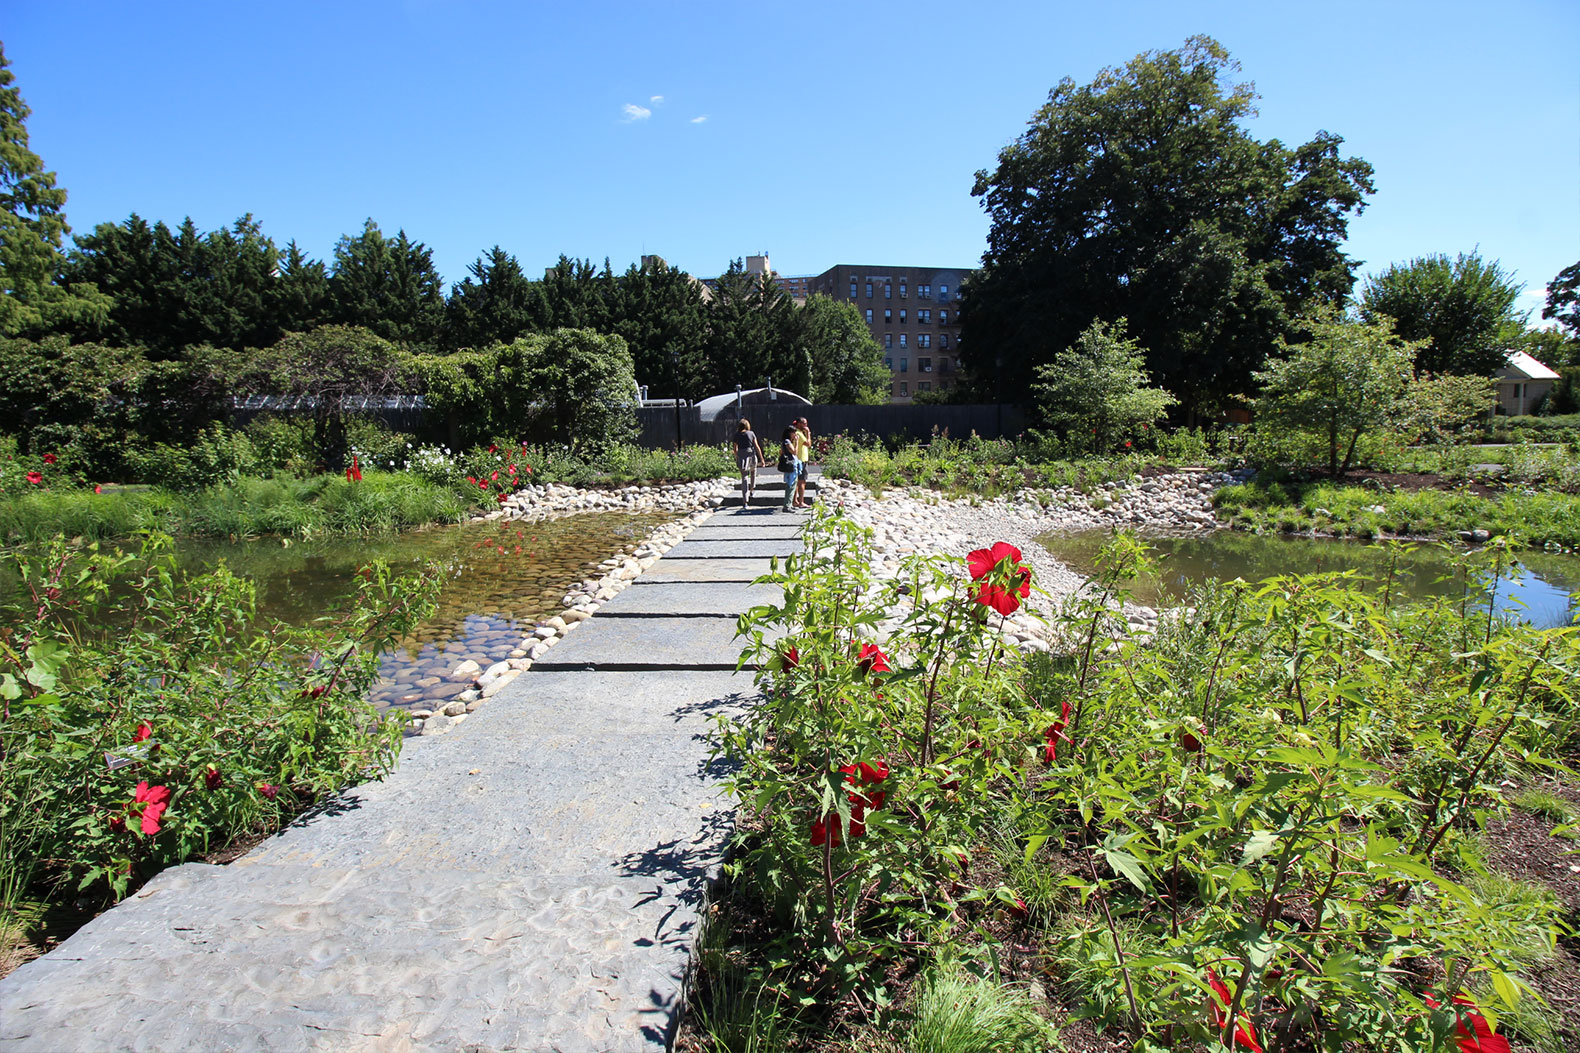 Shelby white and leon levy water garden opens at brooklyn for Botanical garden design